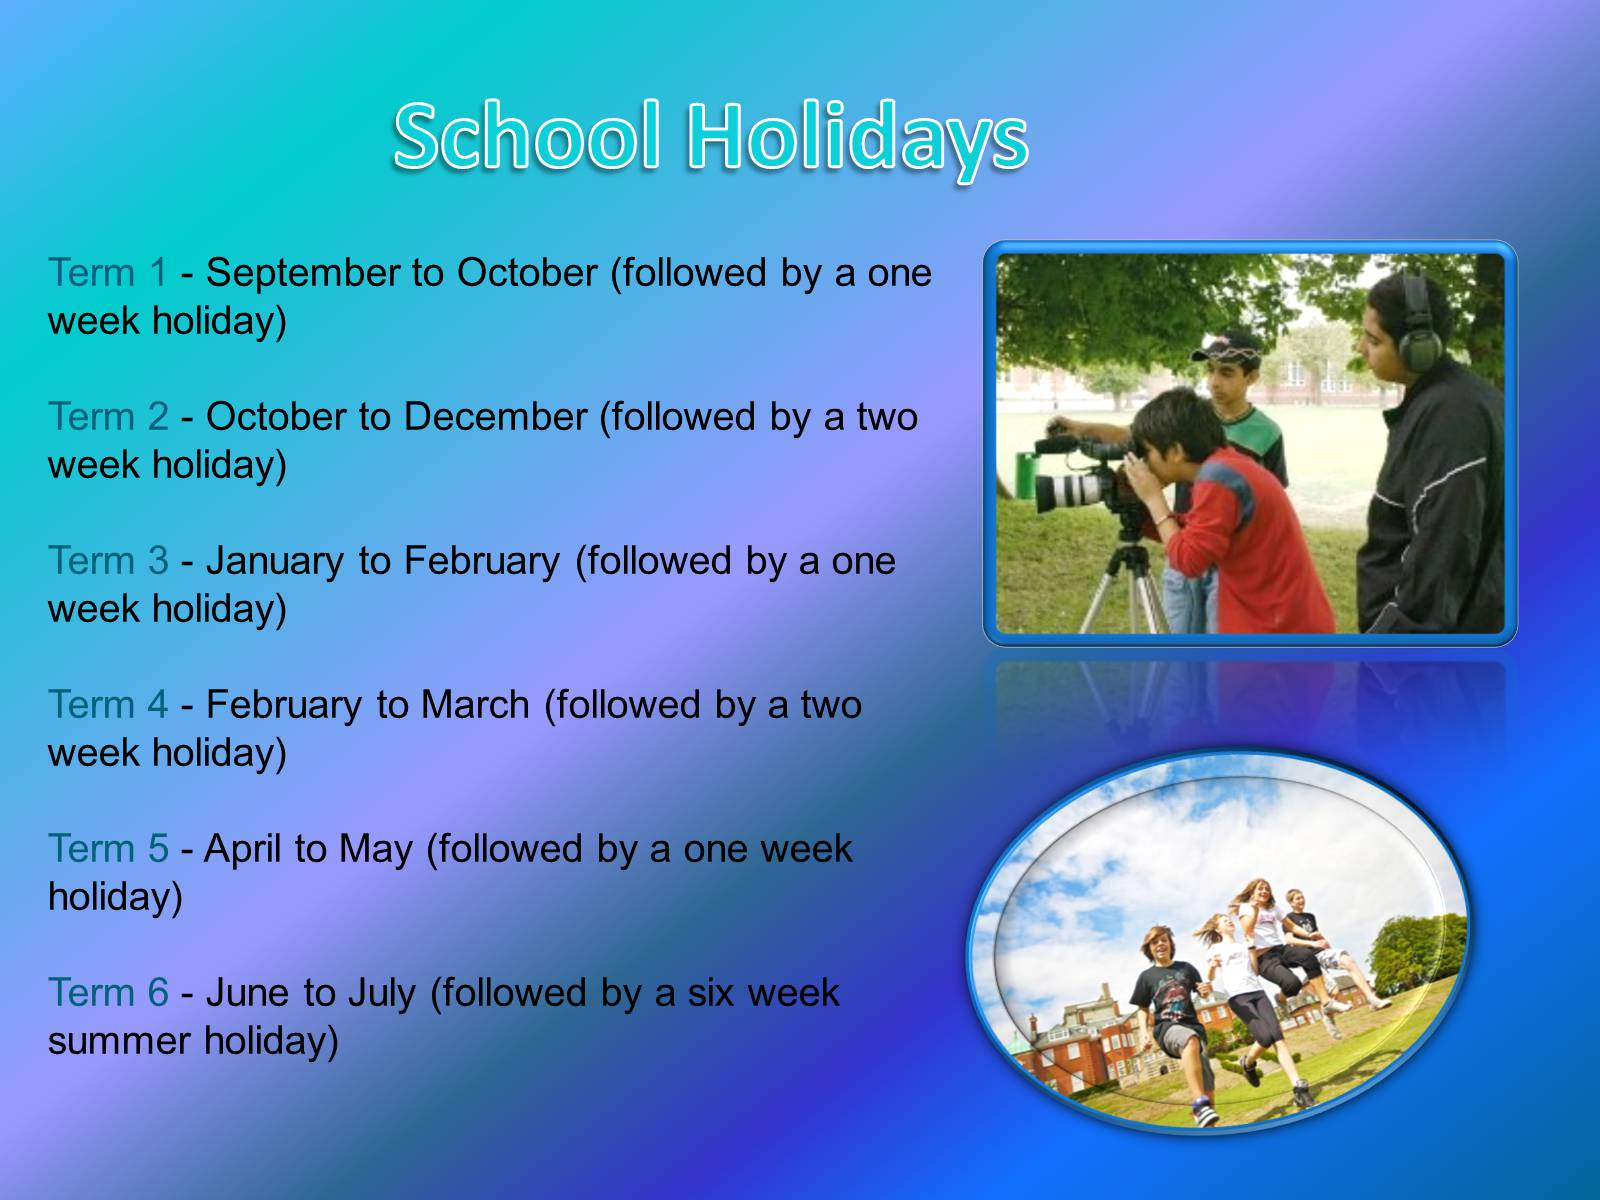 school holidays Know nsw school holidays 2018 and dates for all four terms holidays in new south wales are quite similar to the holiday dates in other states.